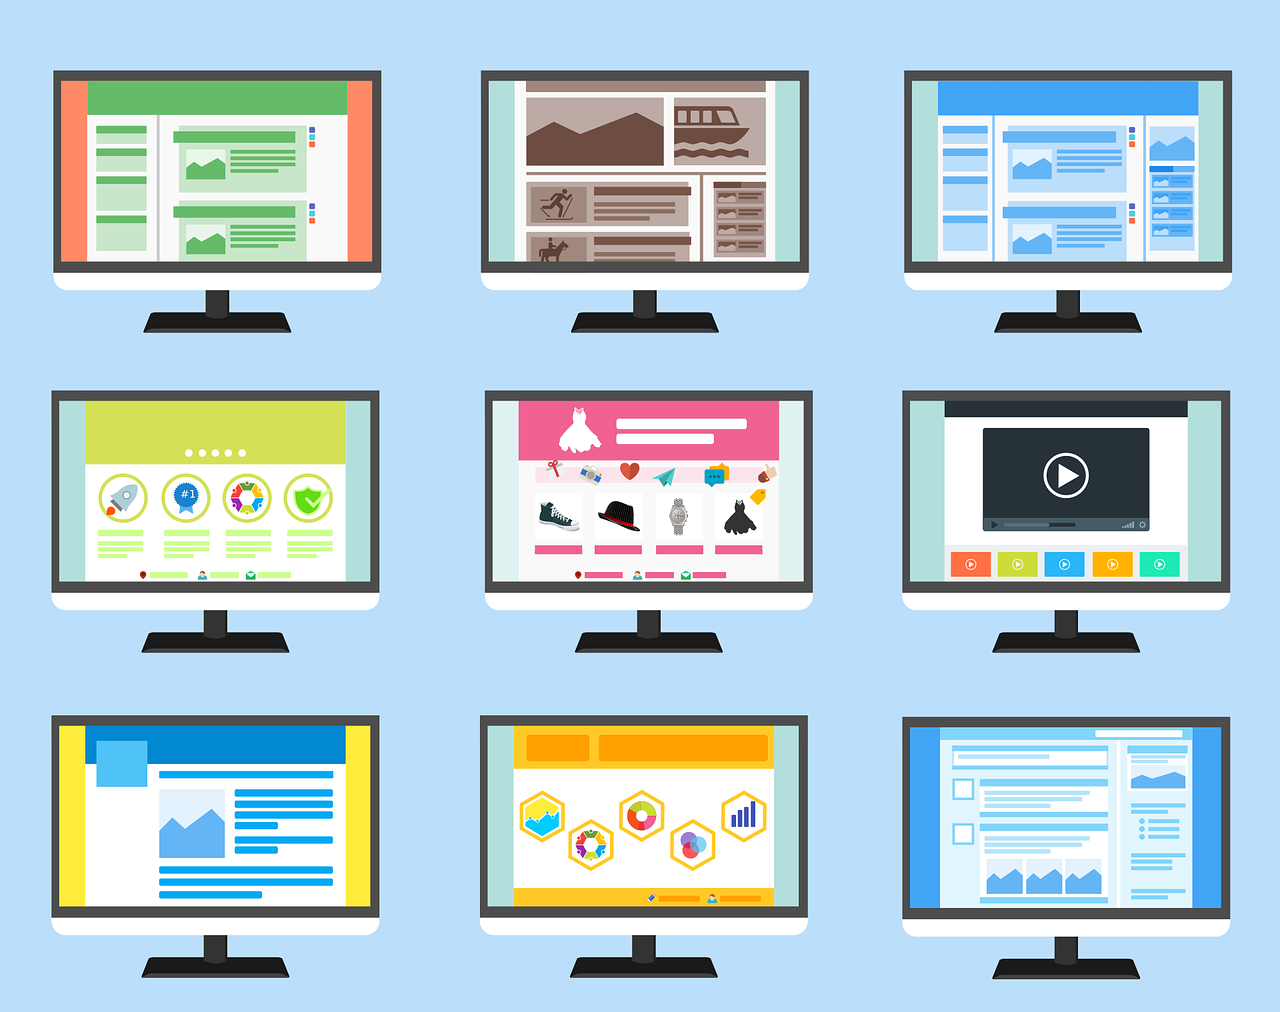 E-commerce Design: Follow These 11 Strategies to Make Your Home Page a Conversion Magnet